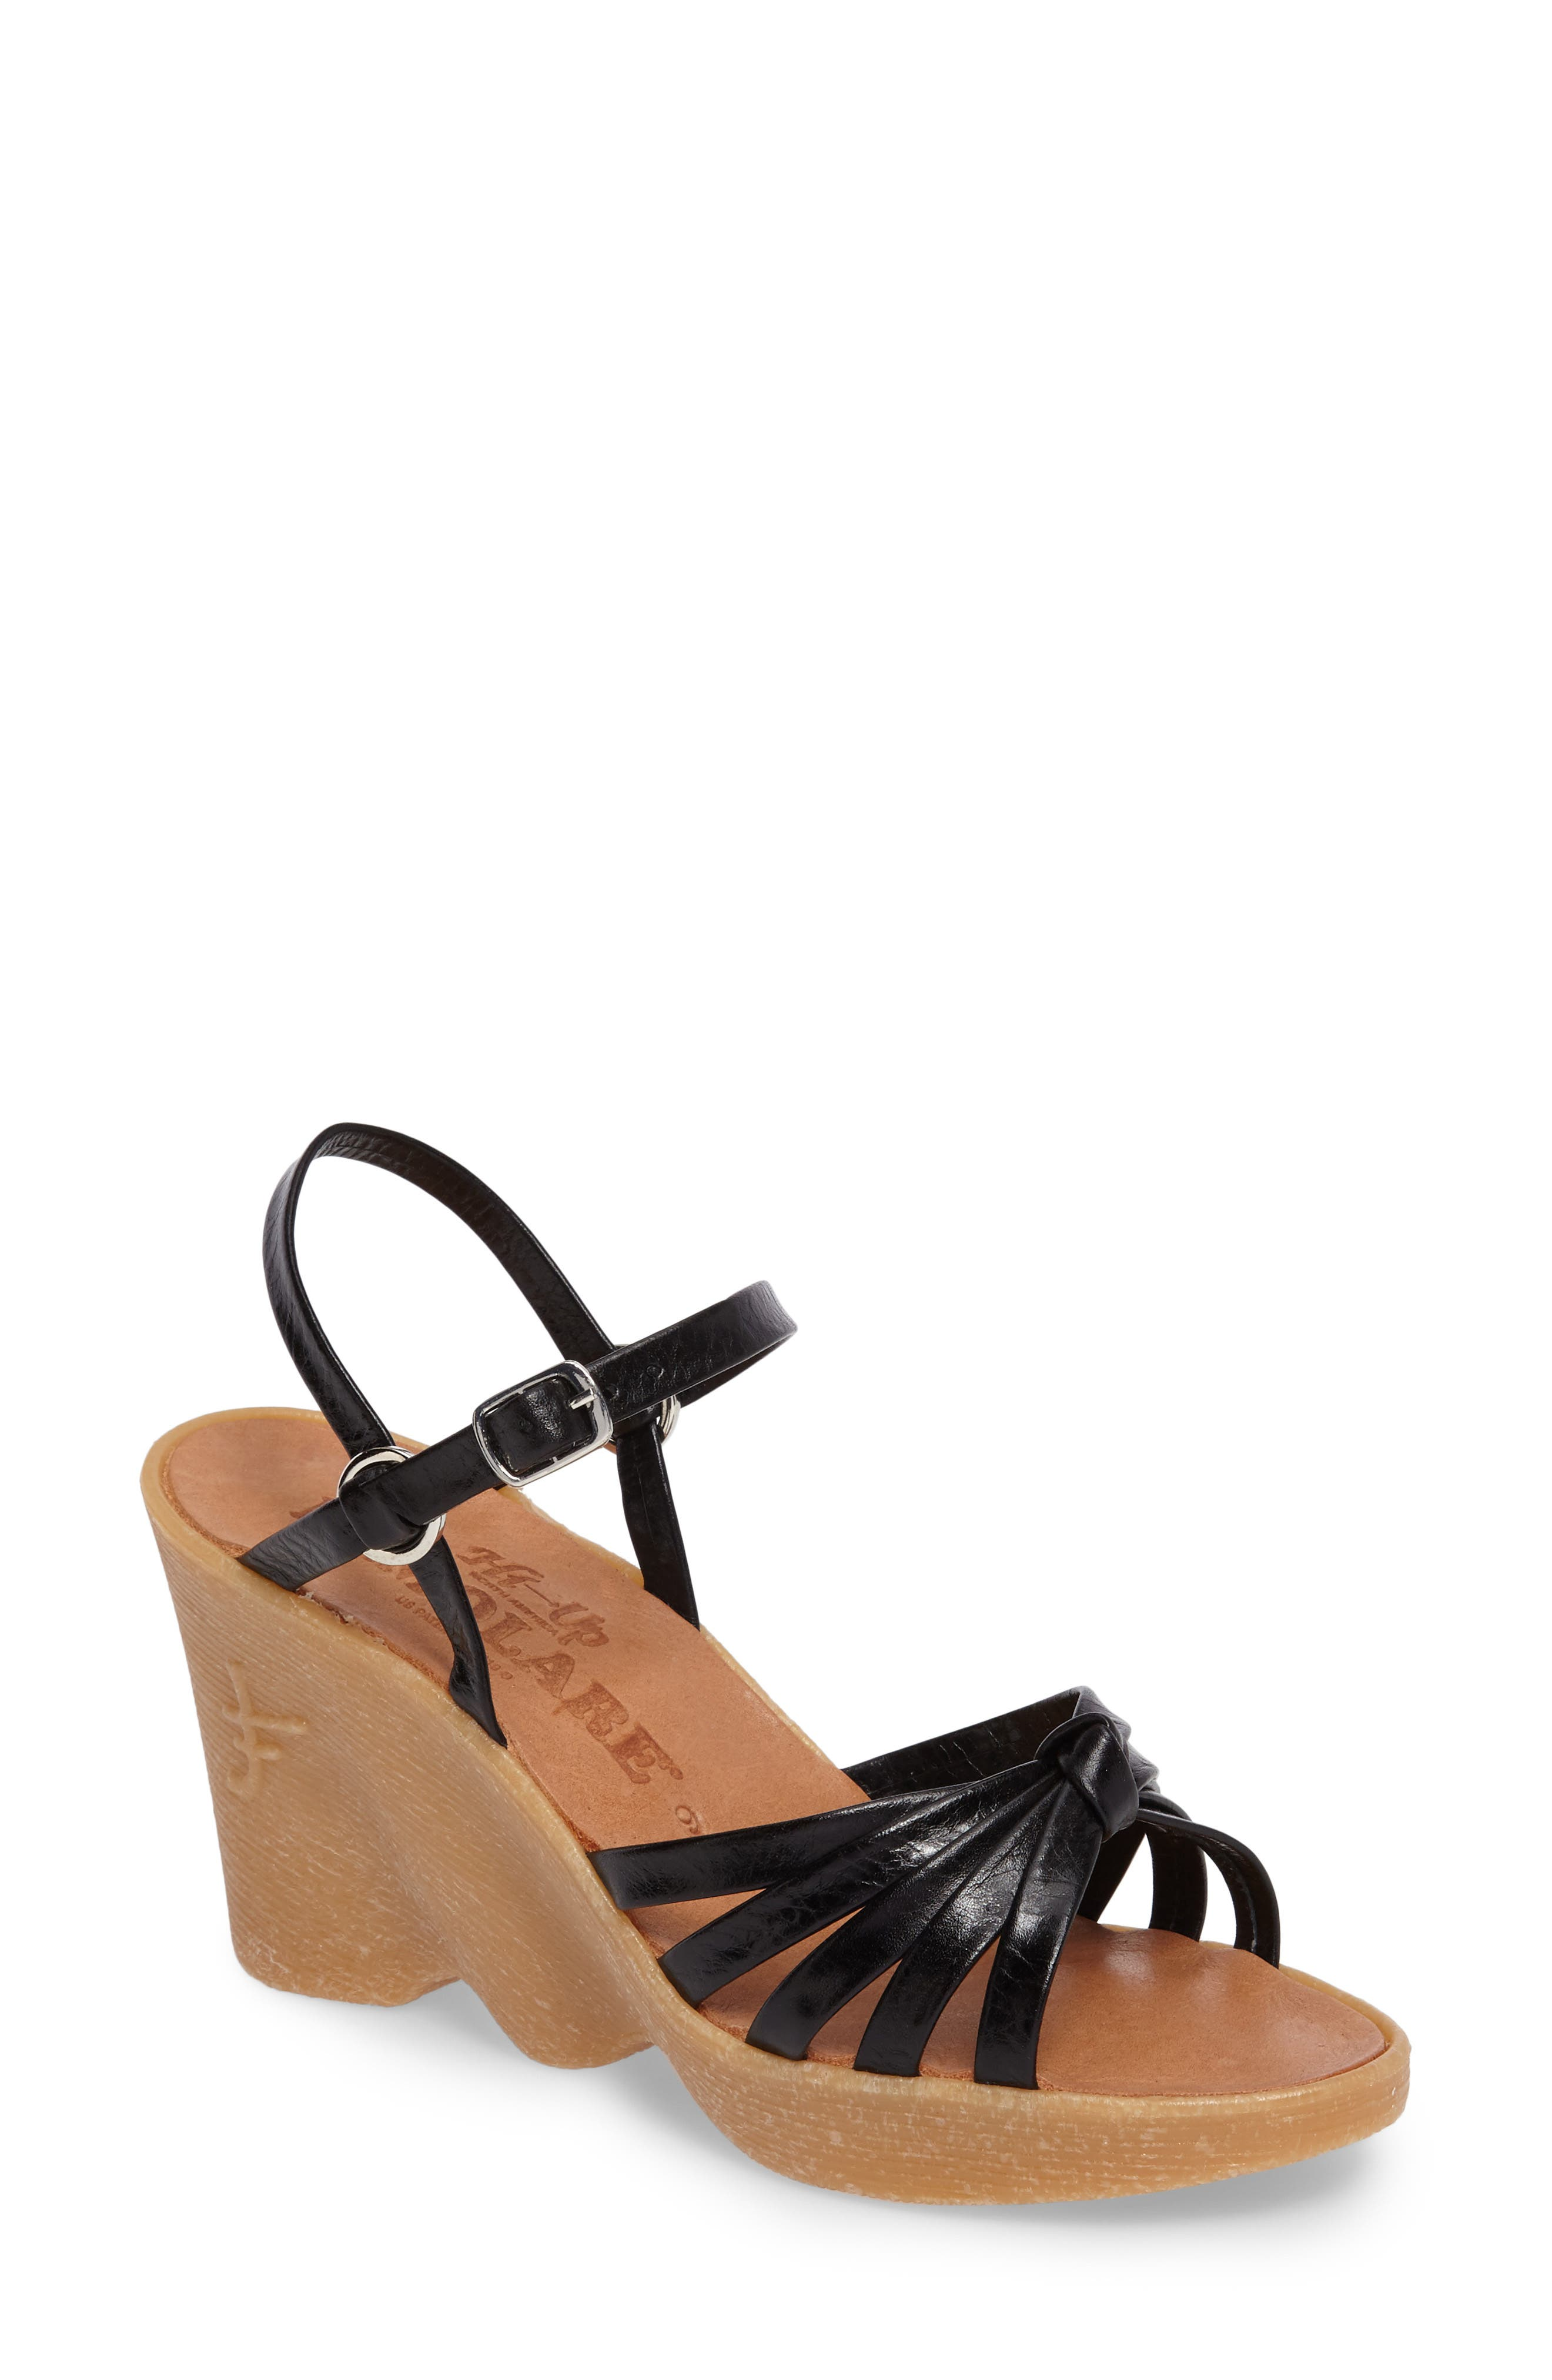 Knotty Monkey Wedge Sandal,                         Main,                         color, Coal Leather